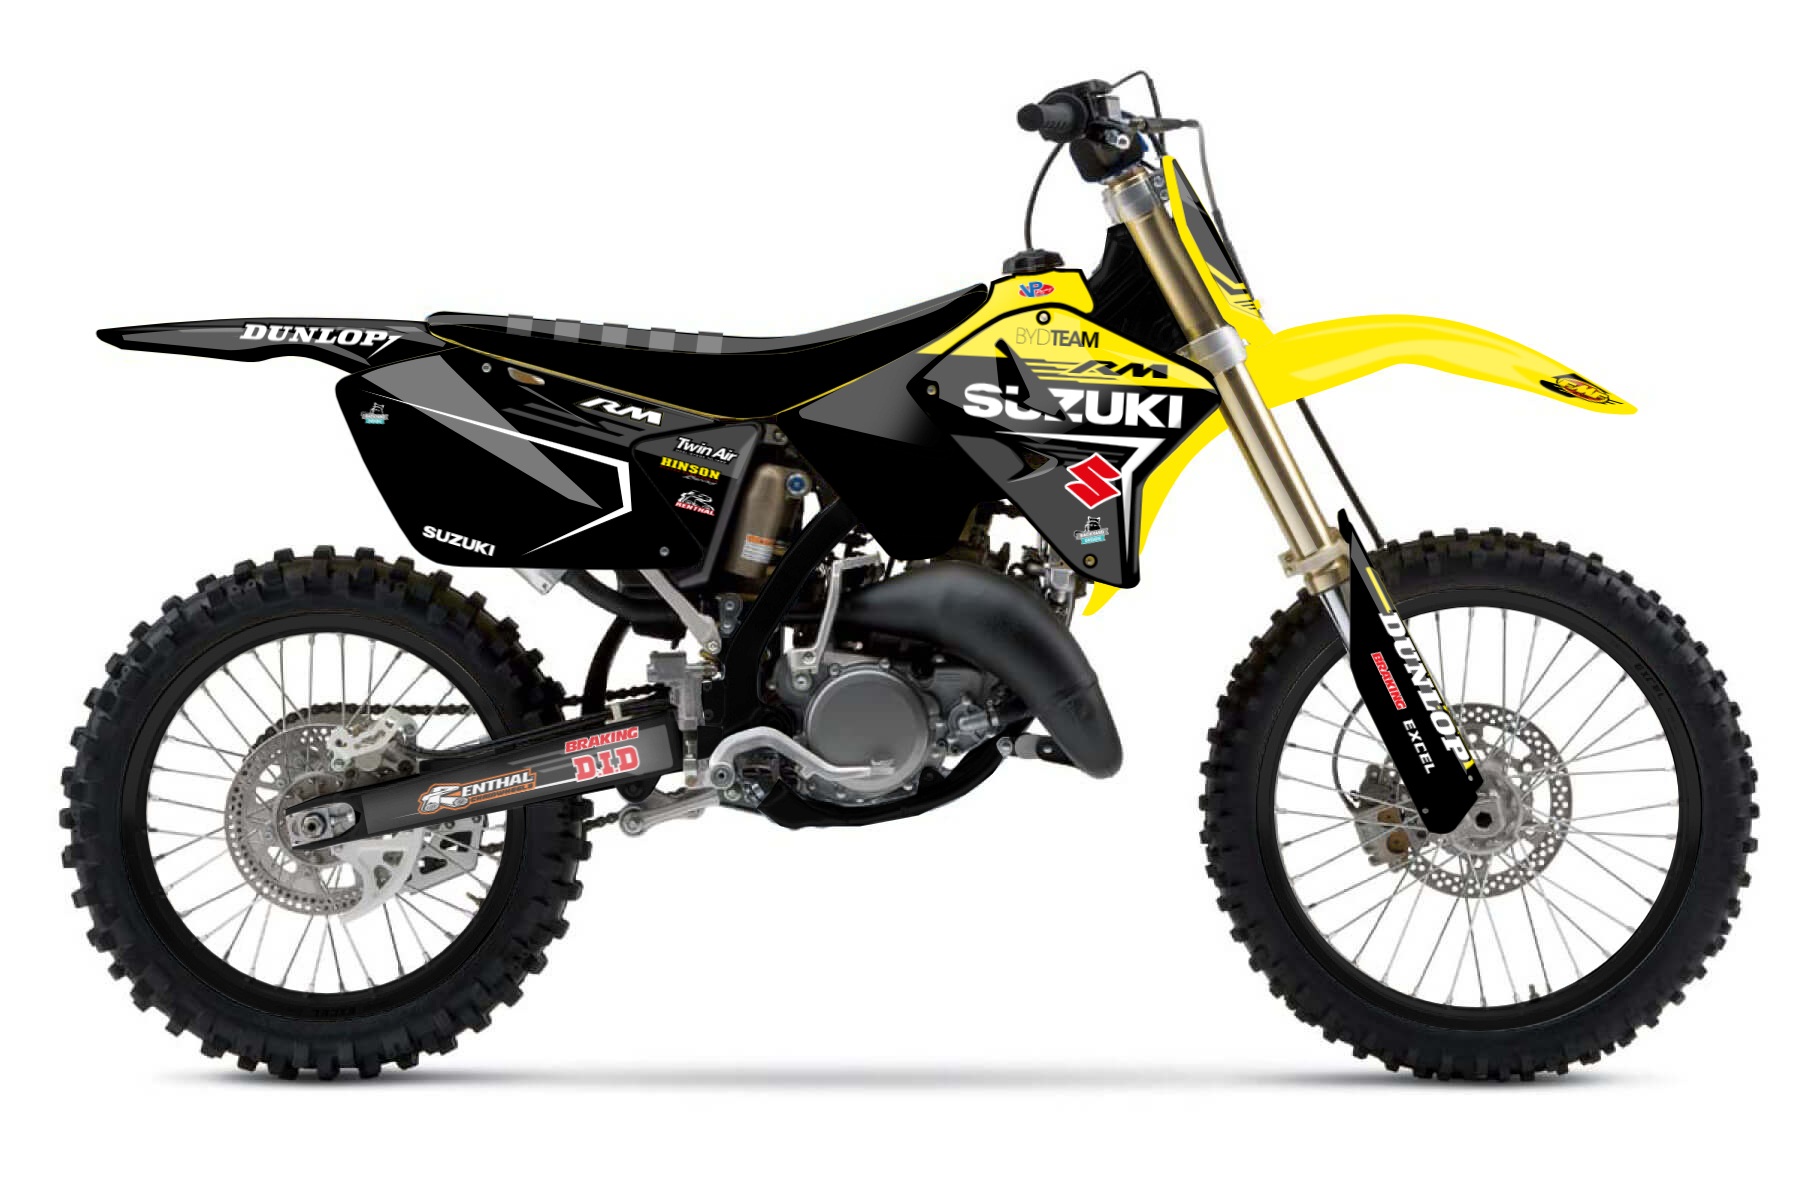 Suzuki RM250 MX Graphic Kits  The Suzuki RM250 is as much a lightweight as it is a reliable and powerful bike for having fun offroad.